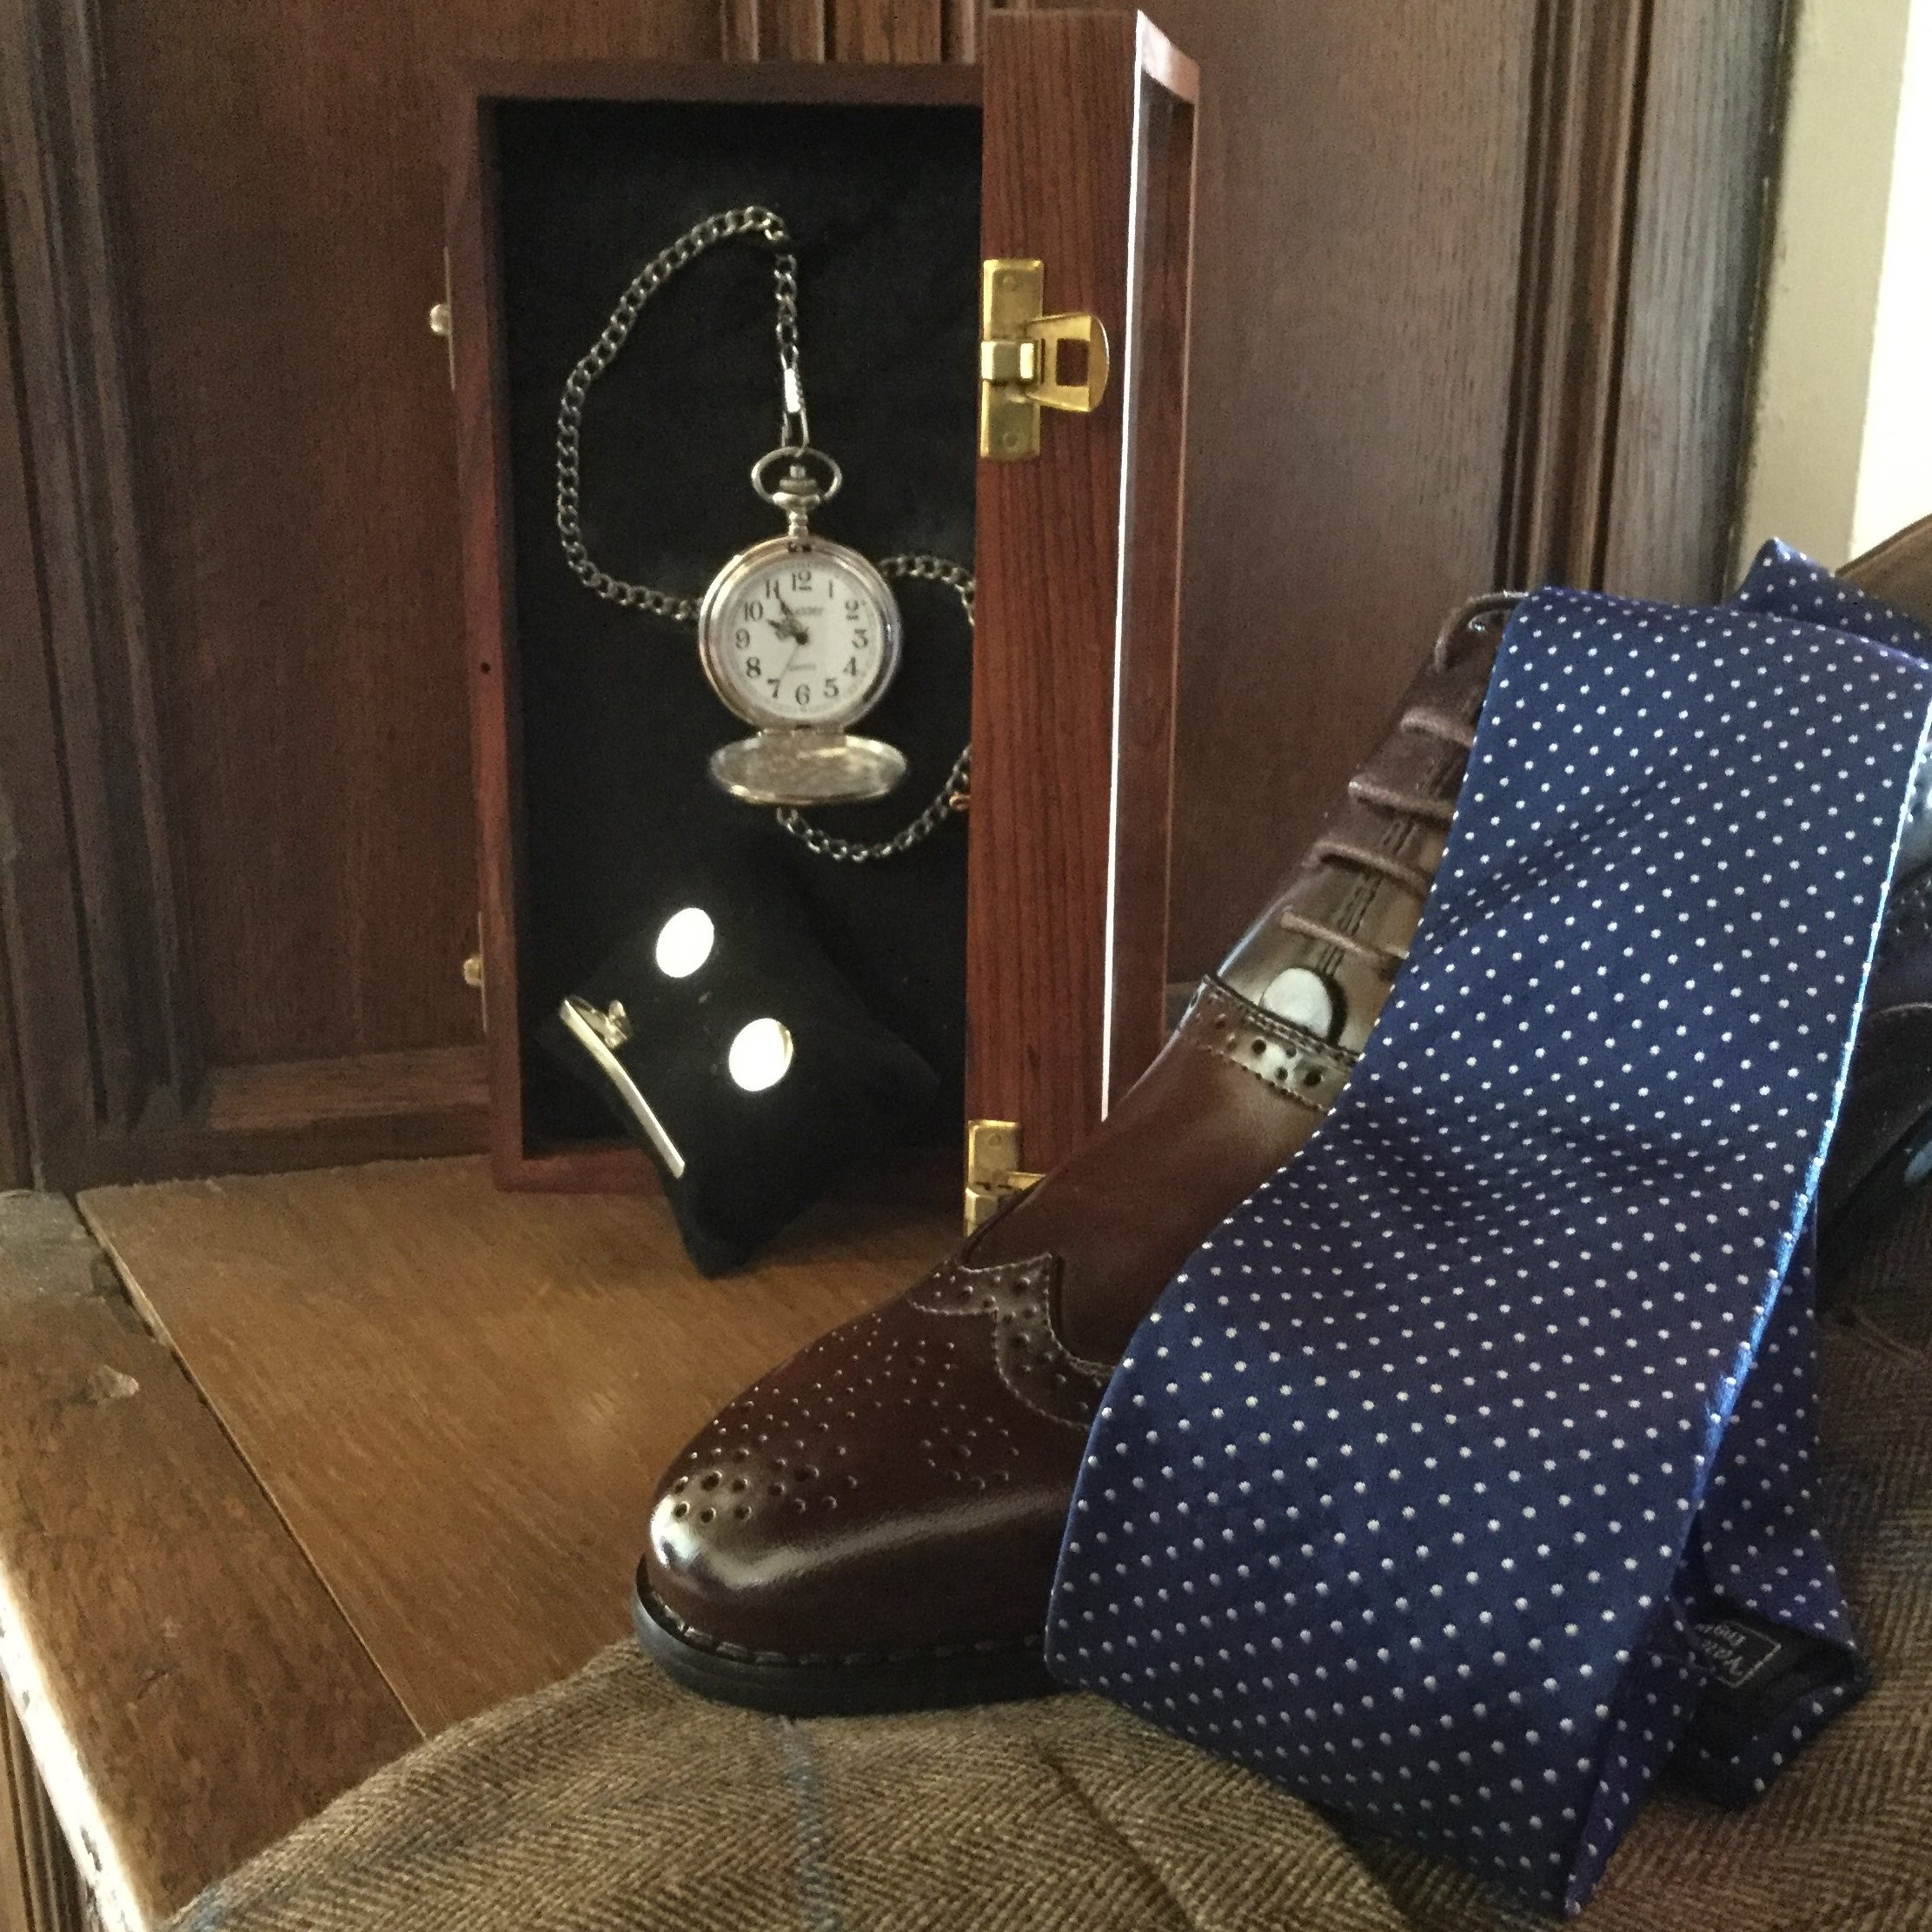 Navy Spotted Tie, Brown Brogue Shoe, Silver Pocket Watch, Tiebar and Cufflinks